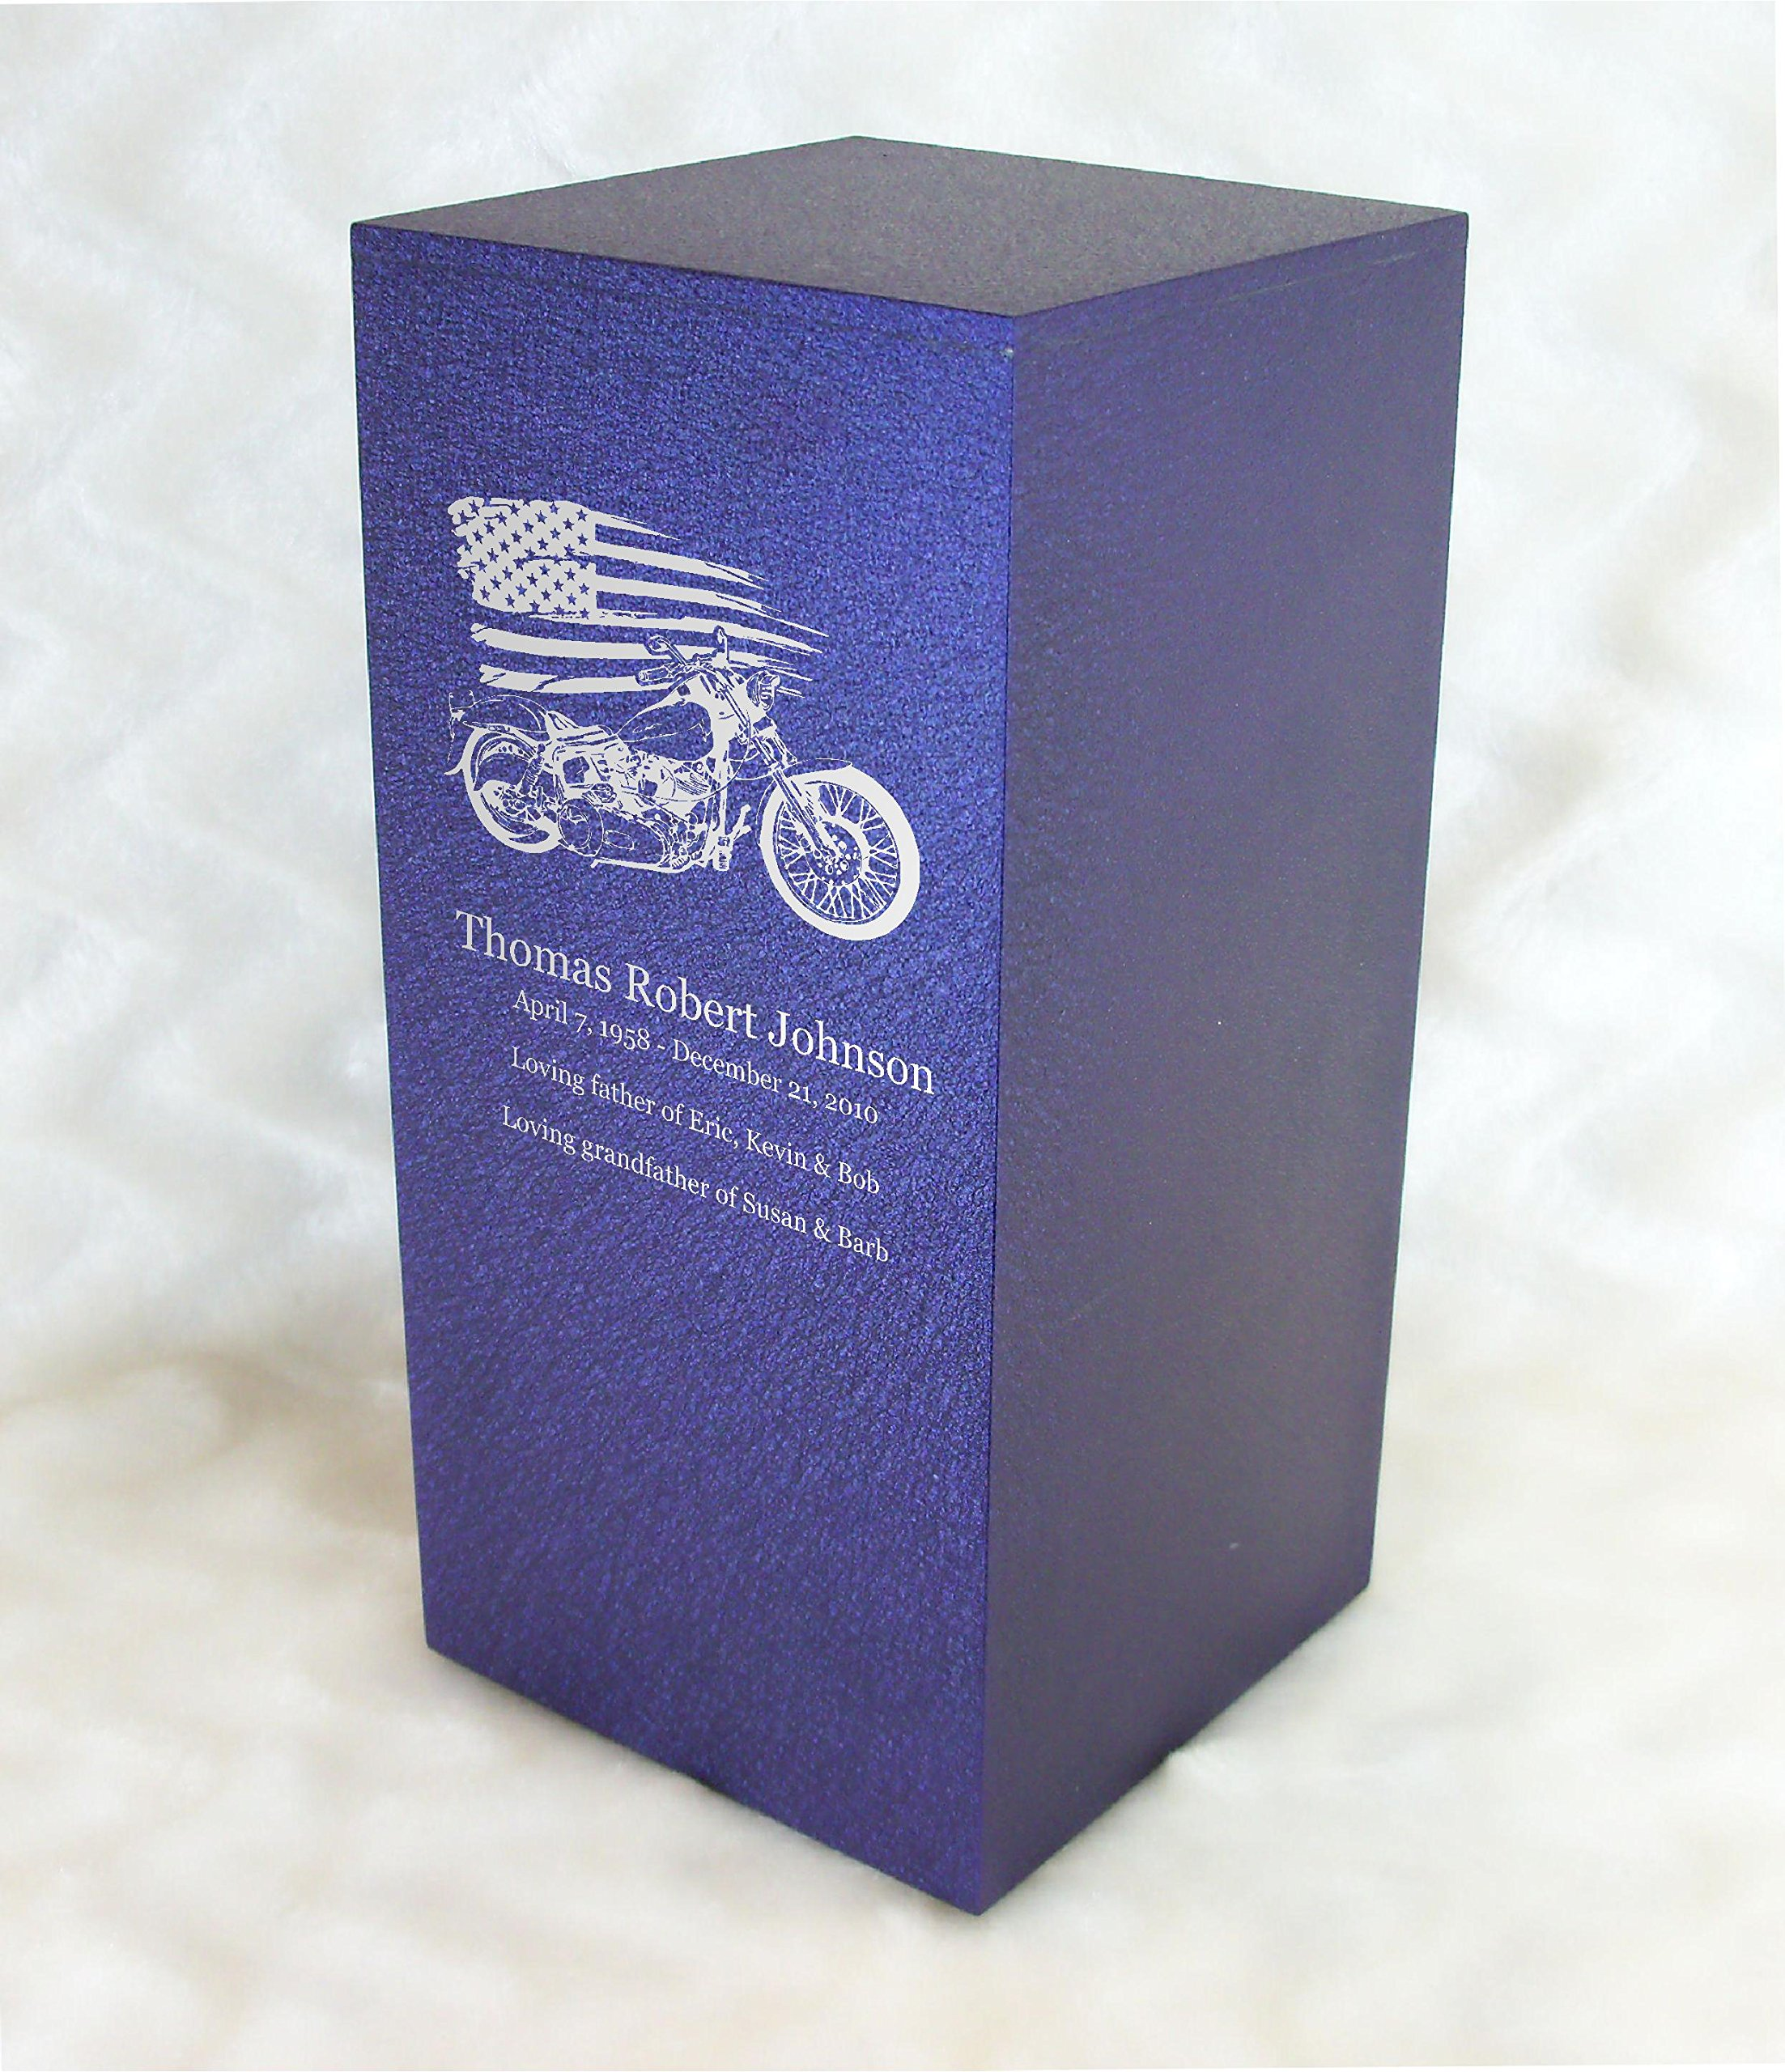 PERSONALIZED Engraved Motorcycle Cremation Urn for Human Ashes - Made in America - Handcrafted in the USA by Amaranthine Urns, Adult Funeral Urn - Eaton DL-up to 200 lbs living weight -(Purple Velvet)